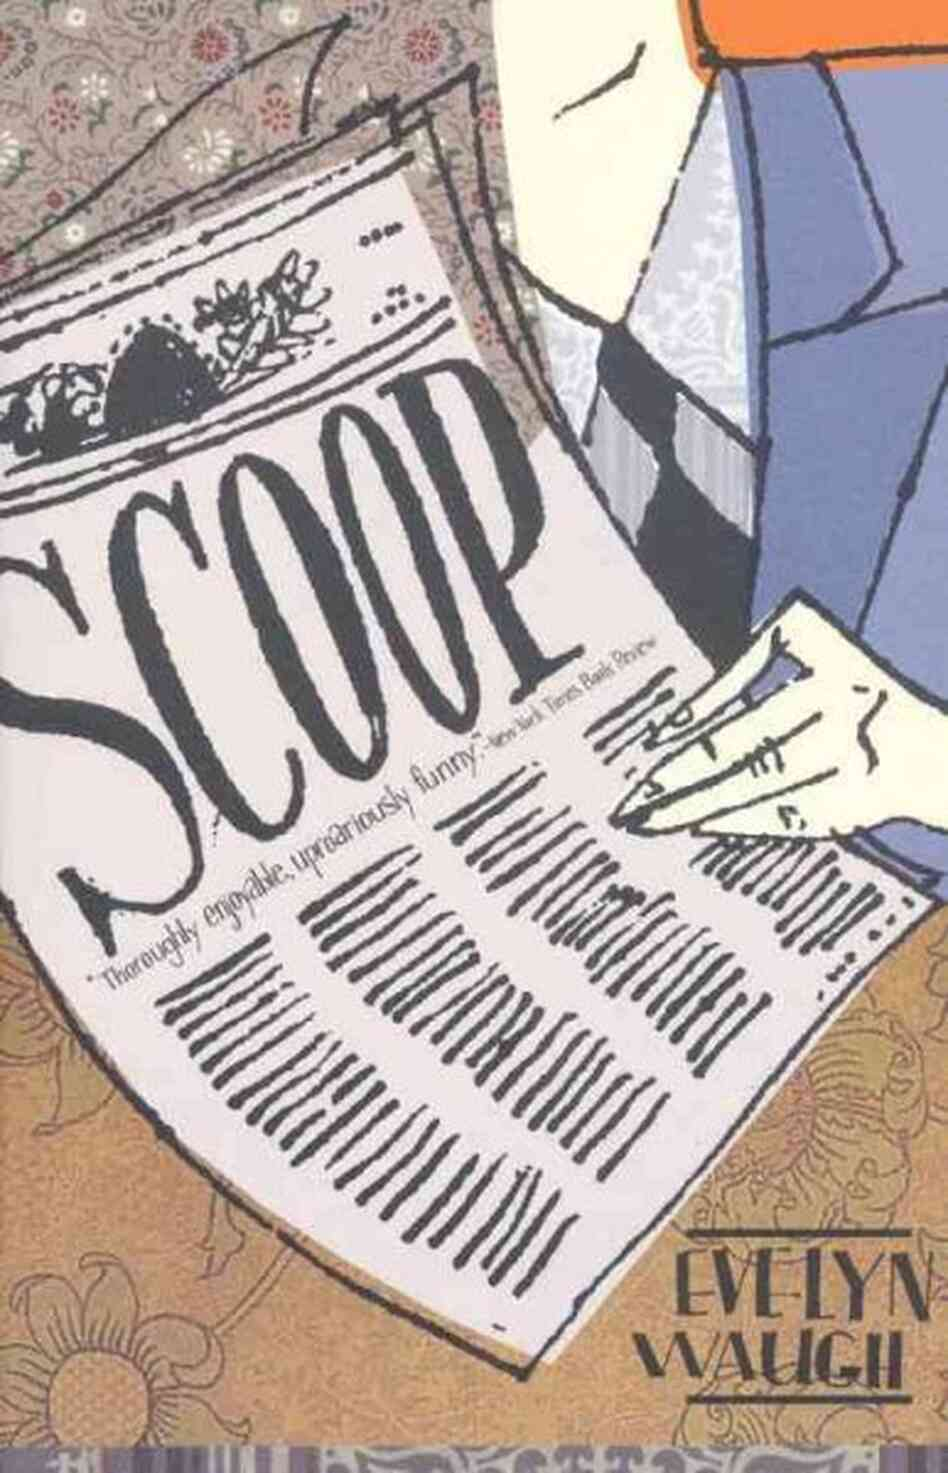 an analysis of the media in scoop by evelyn waugh Arthur evelyn st john waugh (28 october 1903 – 10 april 1966) was an english writer, known for his dark satires, which include decline and fall, vile bodies, scoop.